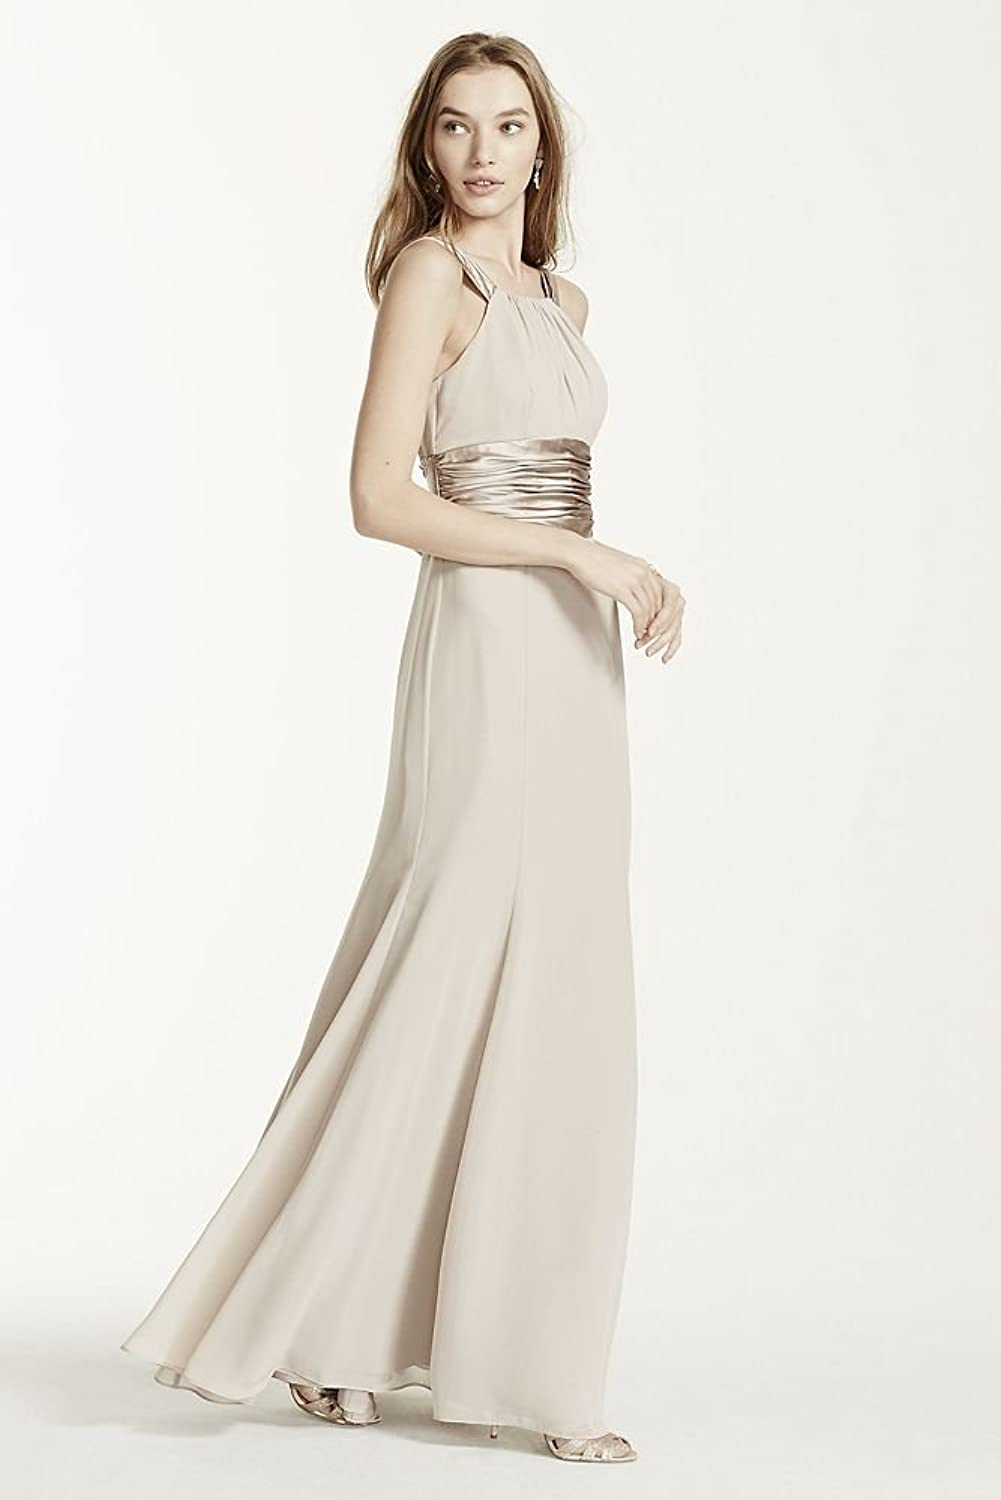 Chiffon and charmeuse bridesmaid dress with rounded neckline style chiffon and charmeuse bridesmaid dress with rounded neckline style f12732 at amazon womens clothing store ombrellifo Gallery